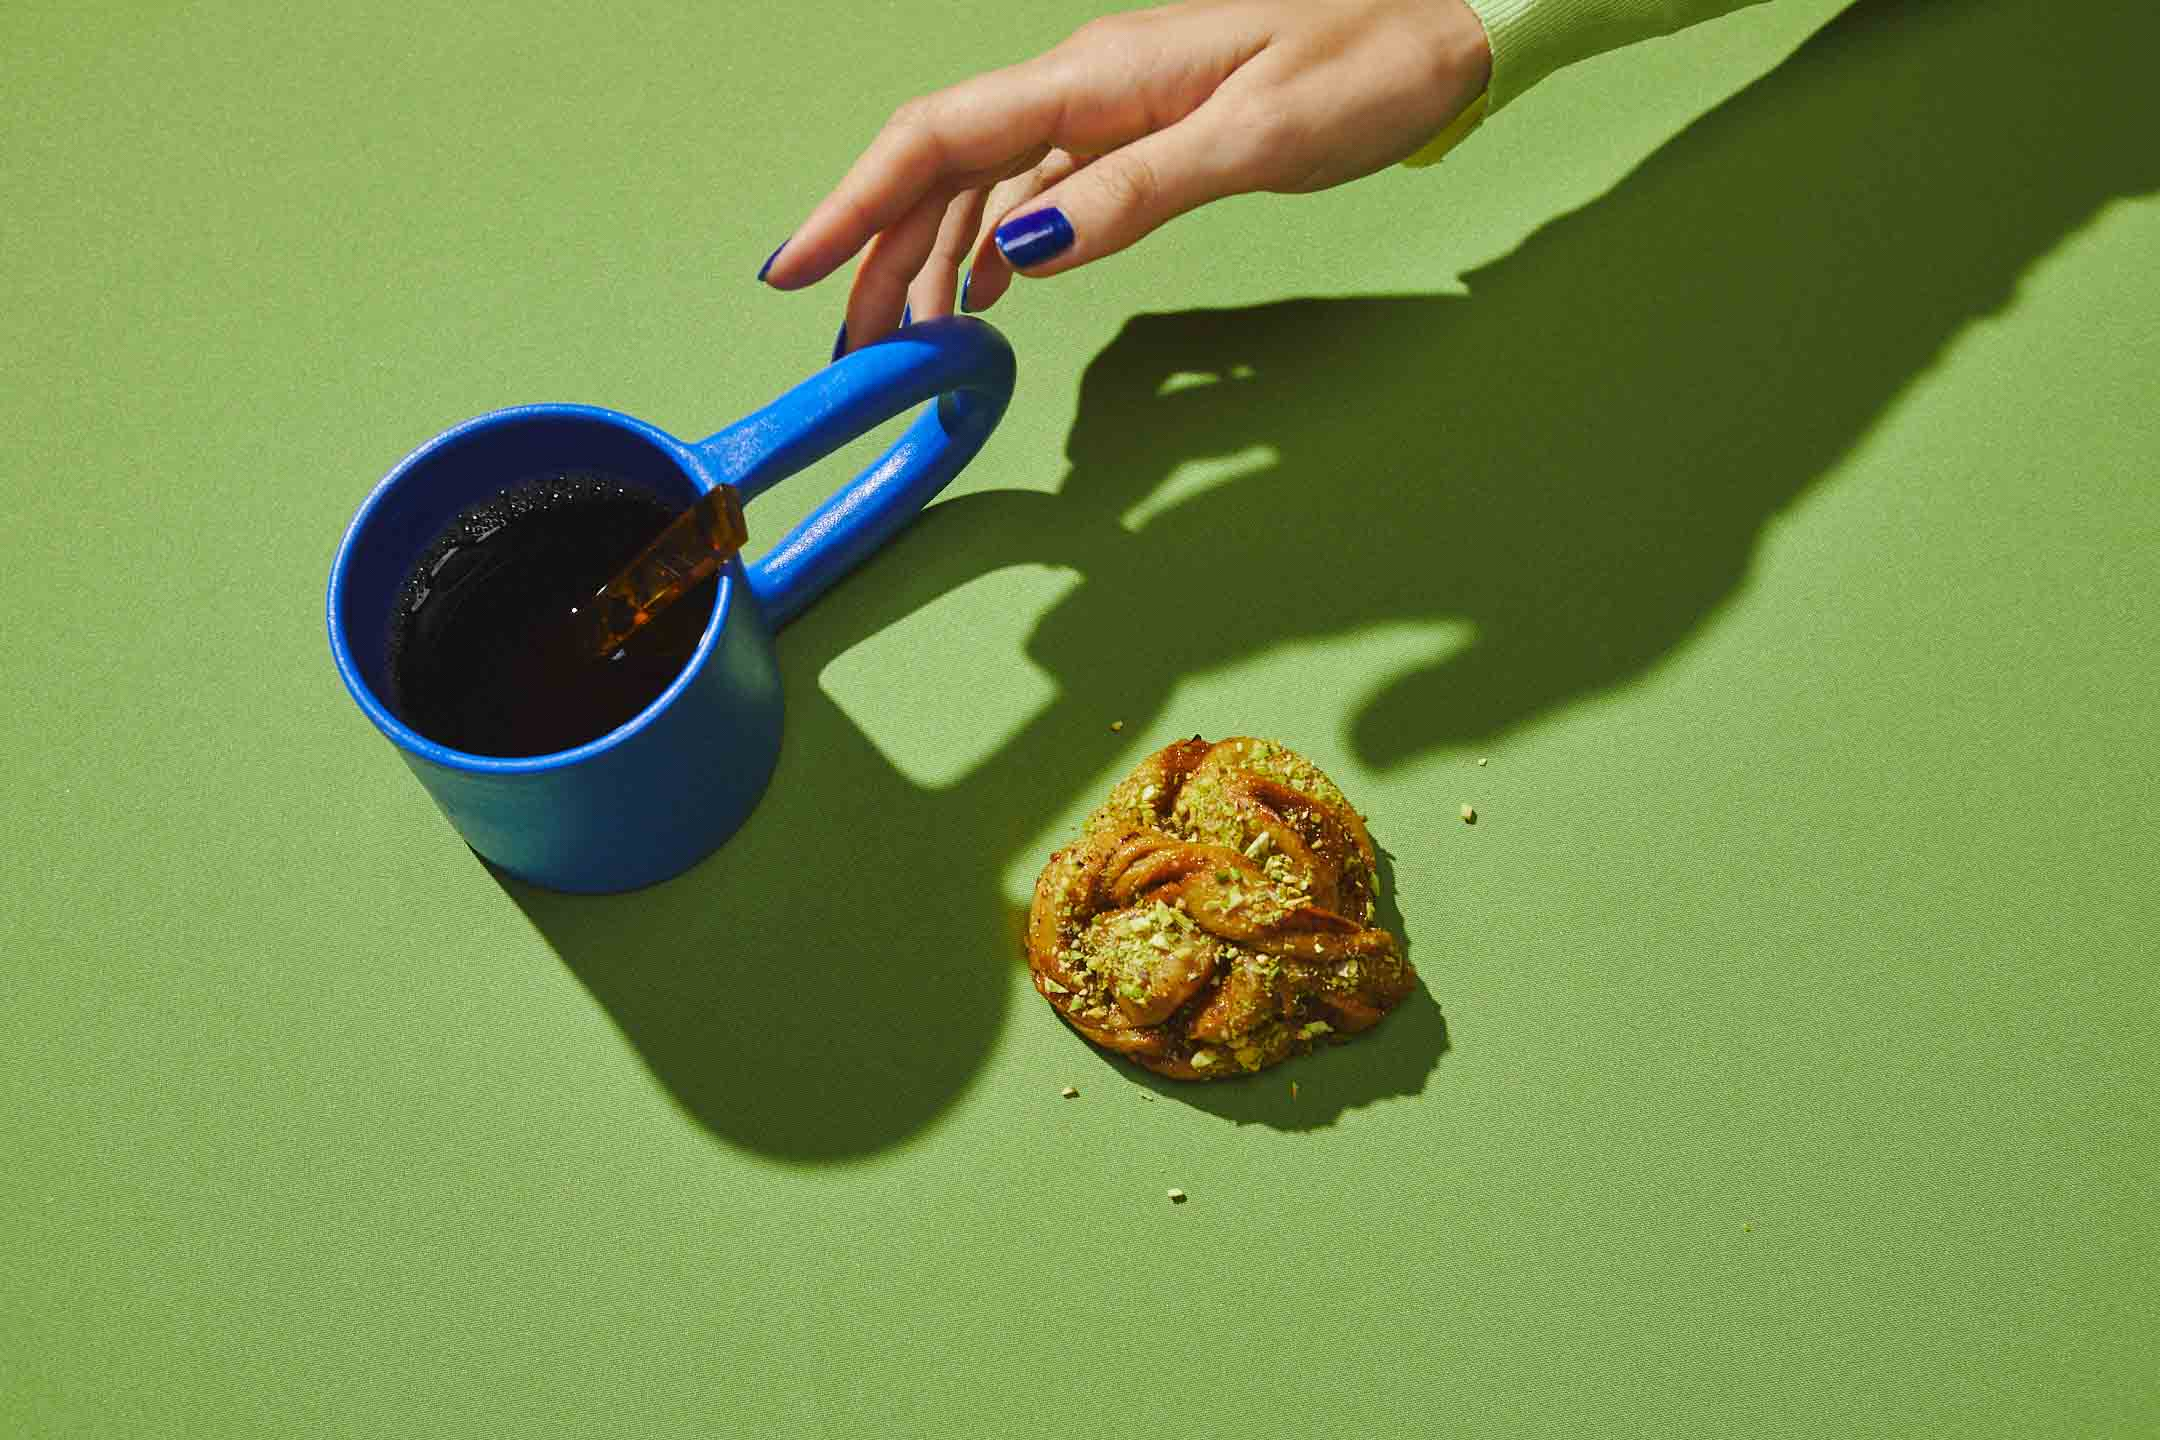 hand reaching for a cup of coffee next to a pastry on a bright lime green background.